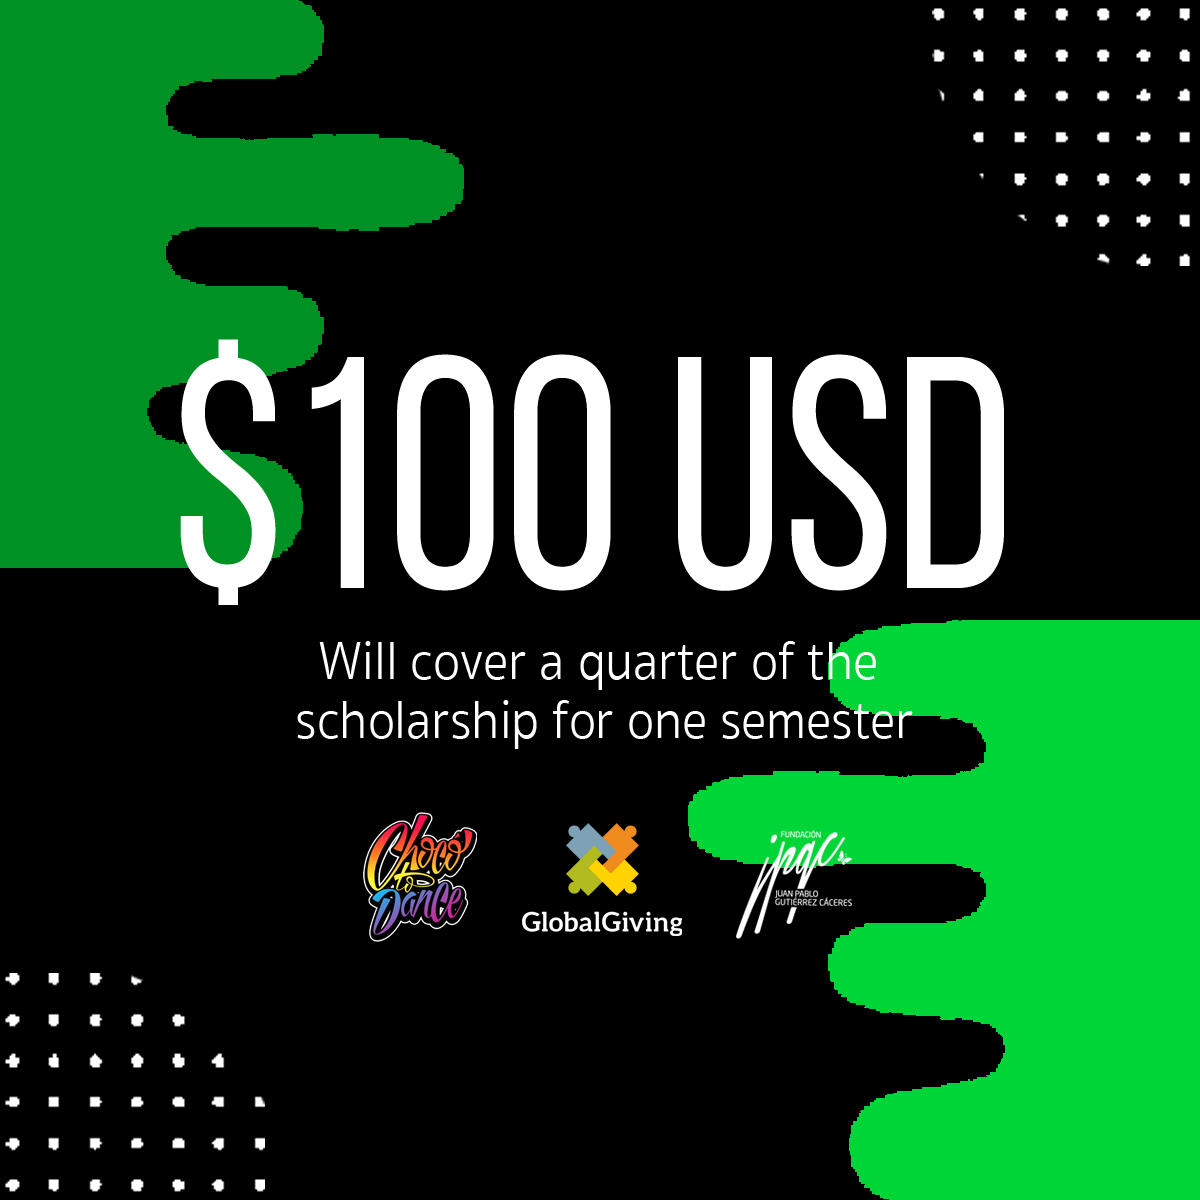 test Twitter Media - Not only can you bet on the education of #Colombia through our classes at https://t.co/JuxXn9hjCy, you can also do it at @GlobalGiving. Your donation makes a big difference in the #dreams of many young people! https://t.co/NHAy0VQlN6 https://t.co/4J3E7fCHvE